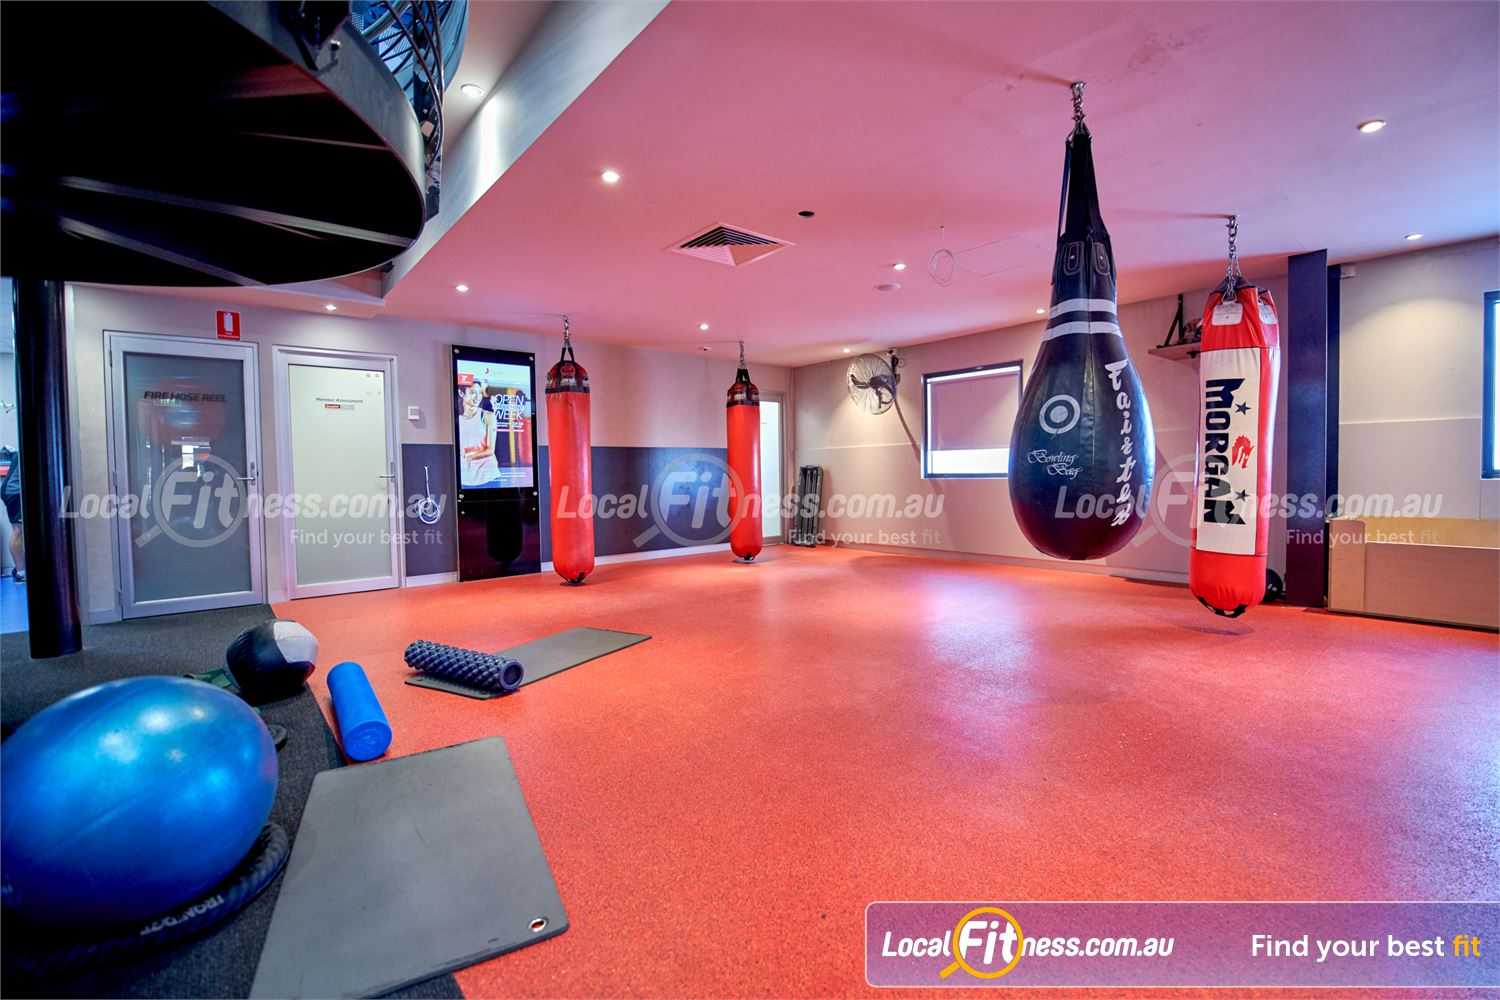 Fitness First Bayside Near Black Rock Our gym includes a Bayside boxing space with heavy bags.